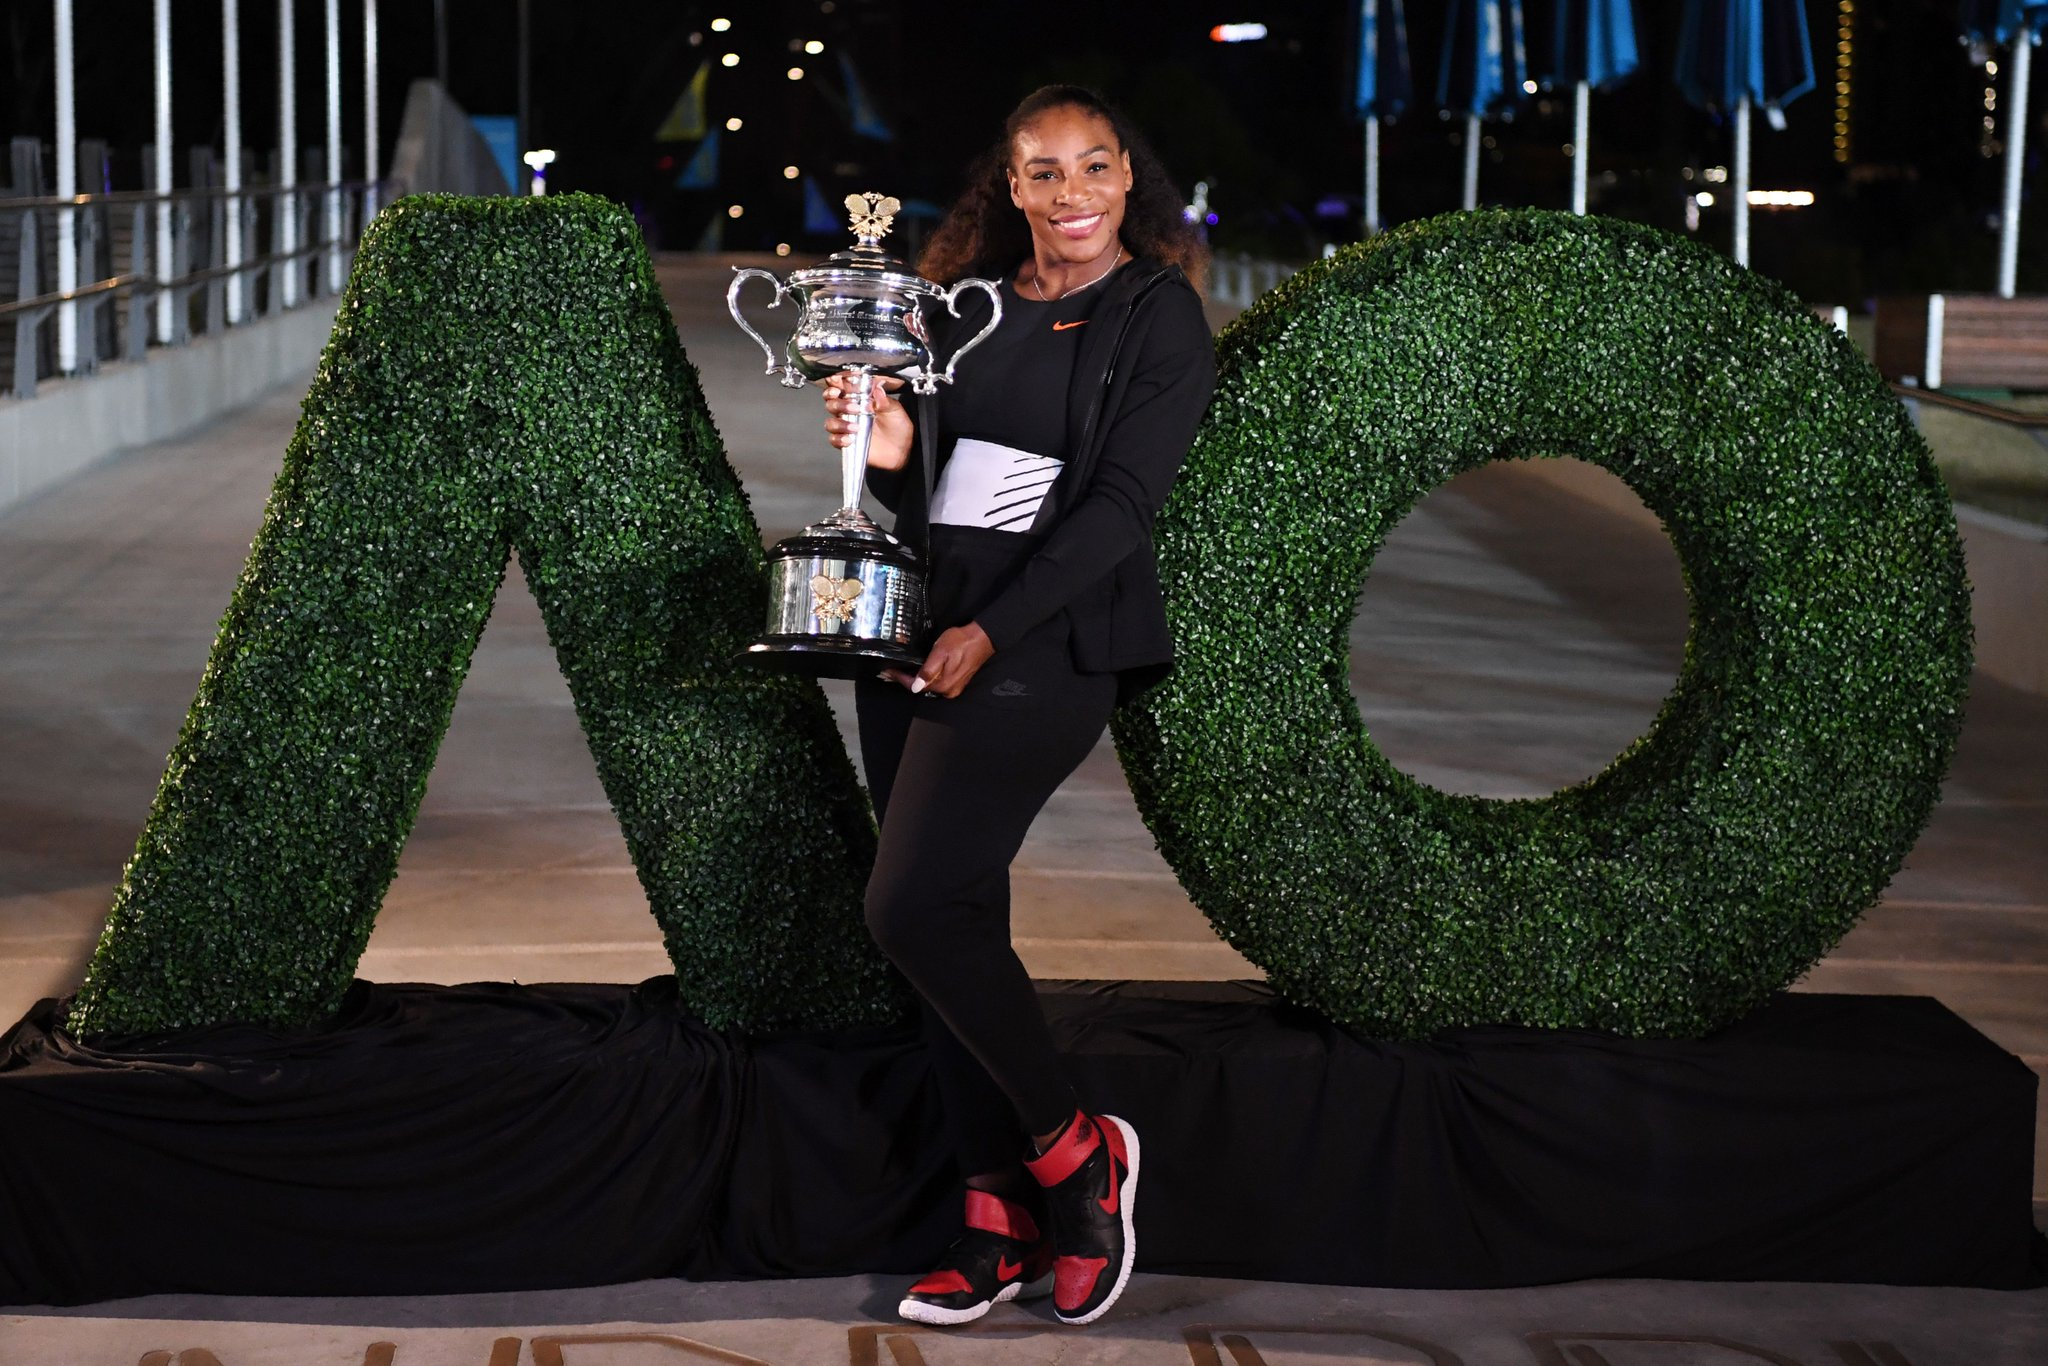 .@serenawilliams is ON the entry list for the @AustralianOpen--> https://t.co/EM98PAHYkt https://t.co/KDFpkbODSO